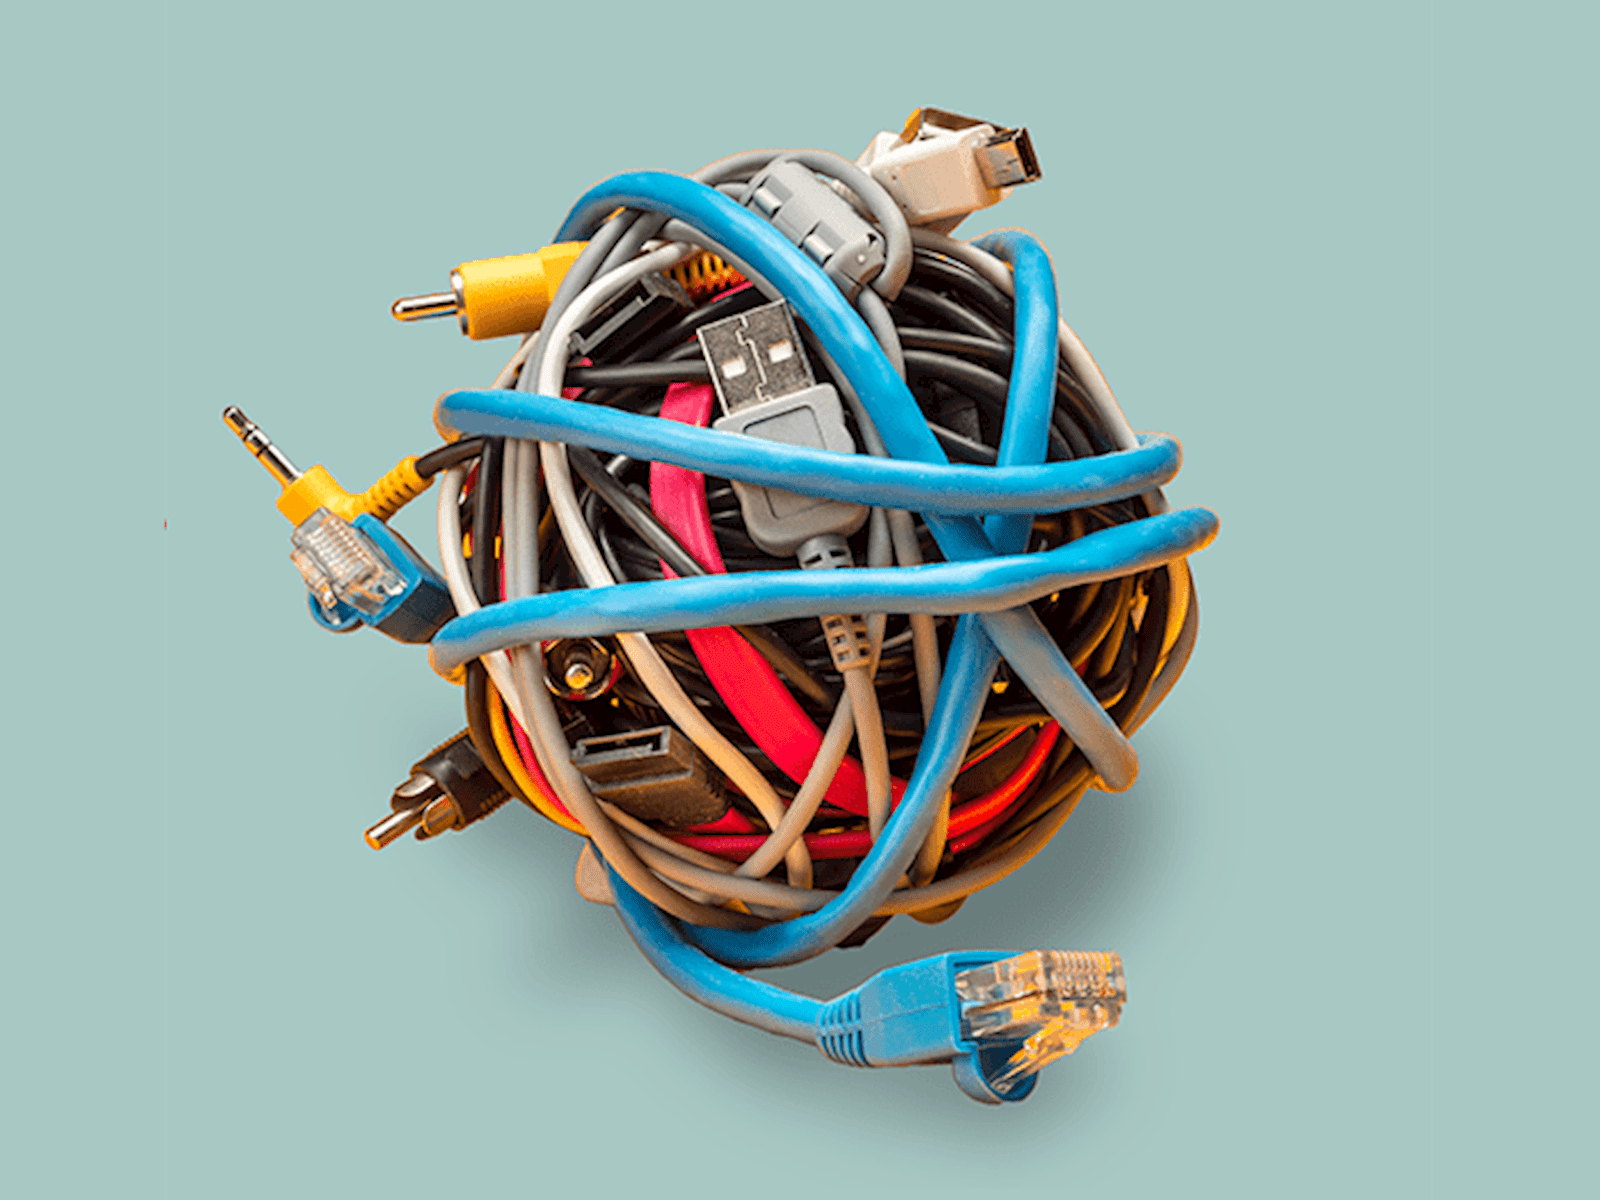 A ball of cables